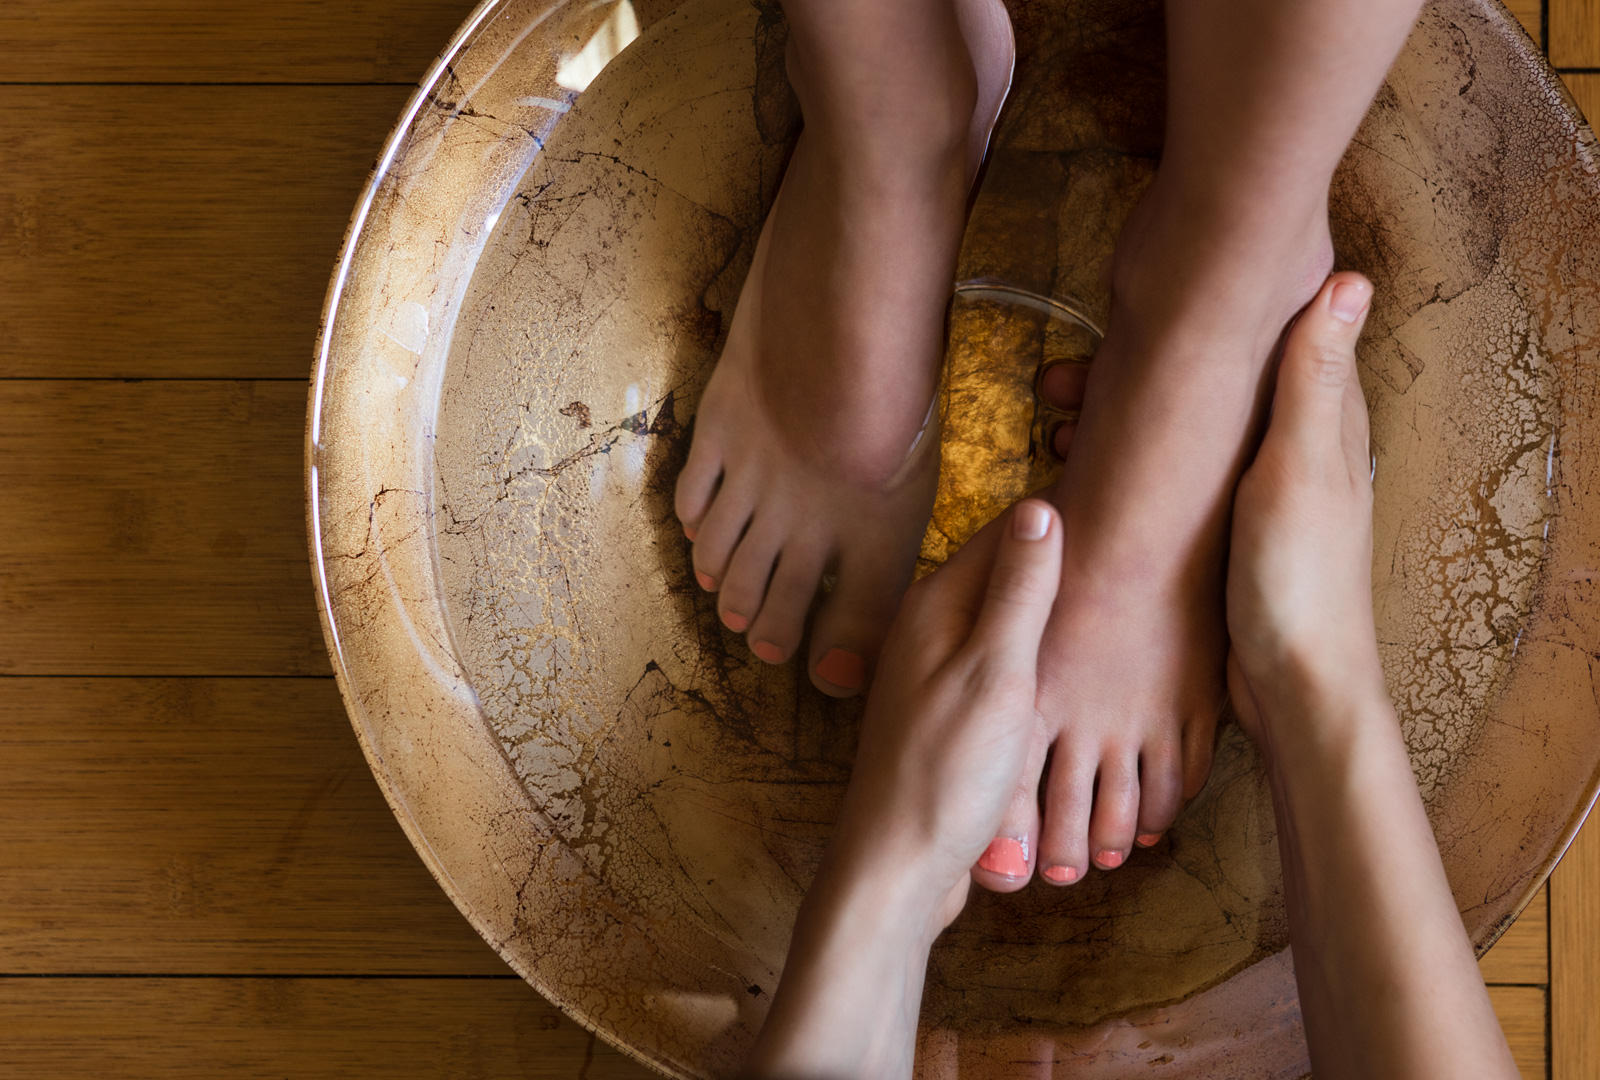 Spa guest receiving a pedicure in a gold bowl